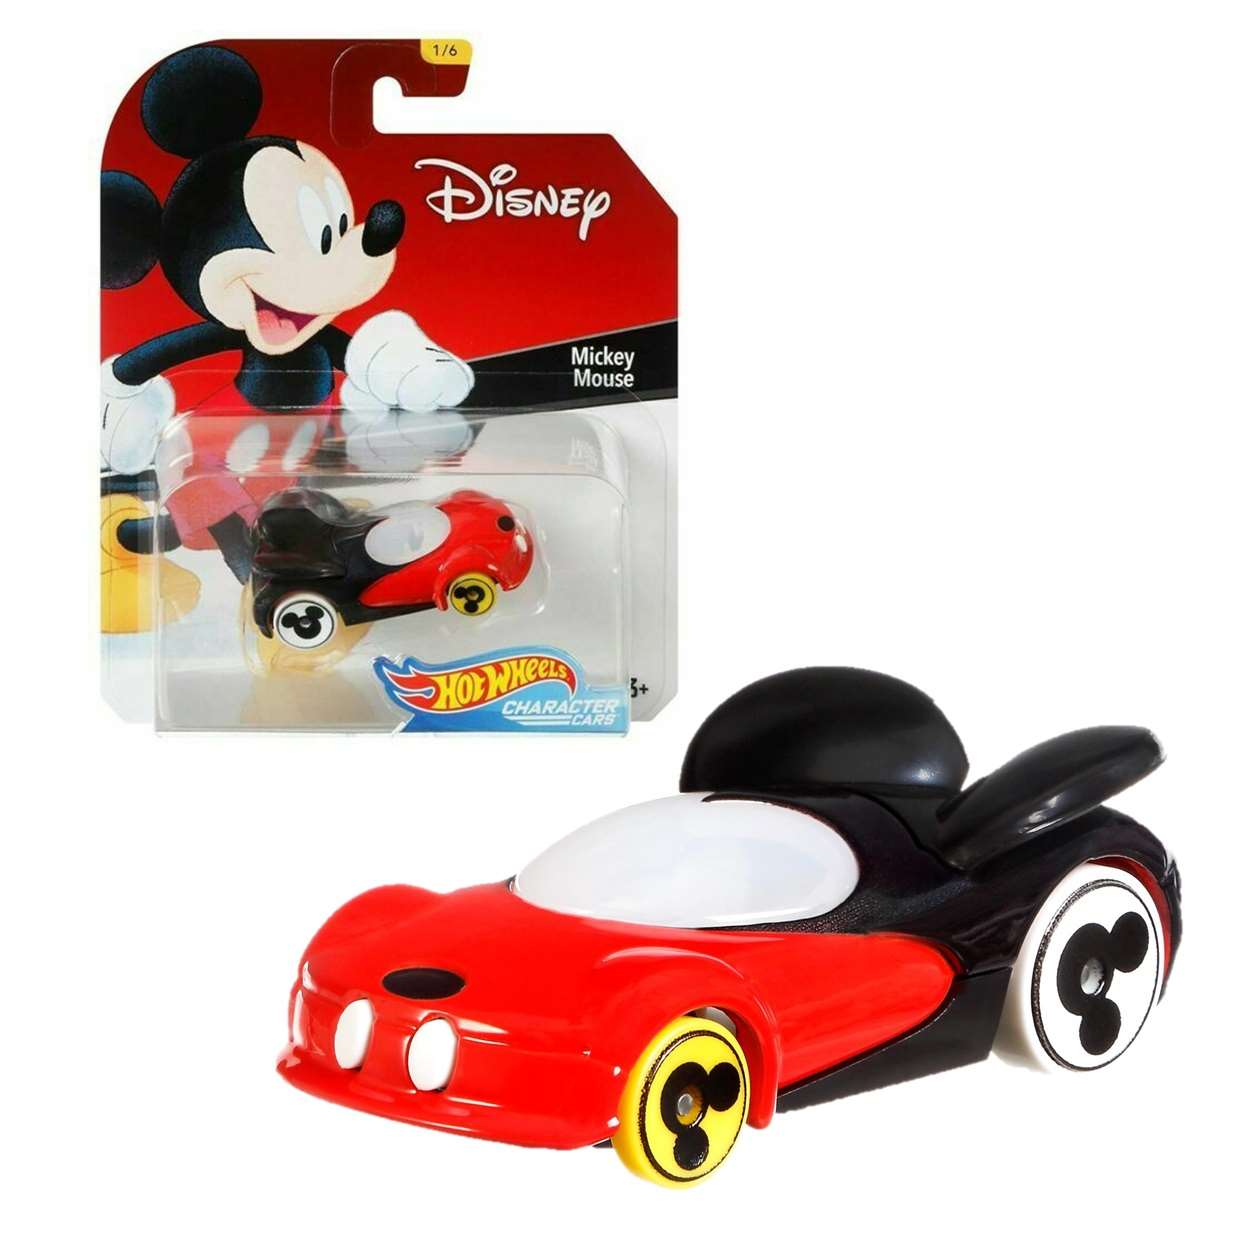 Mickey Mouse 1/6 Hot Wheels Disney Character Cars